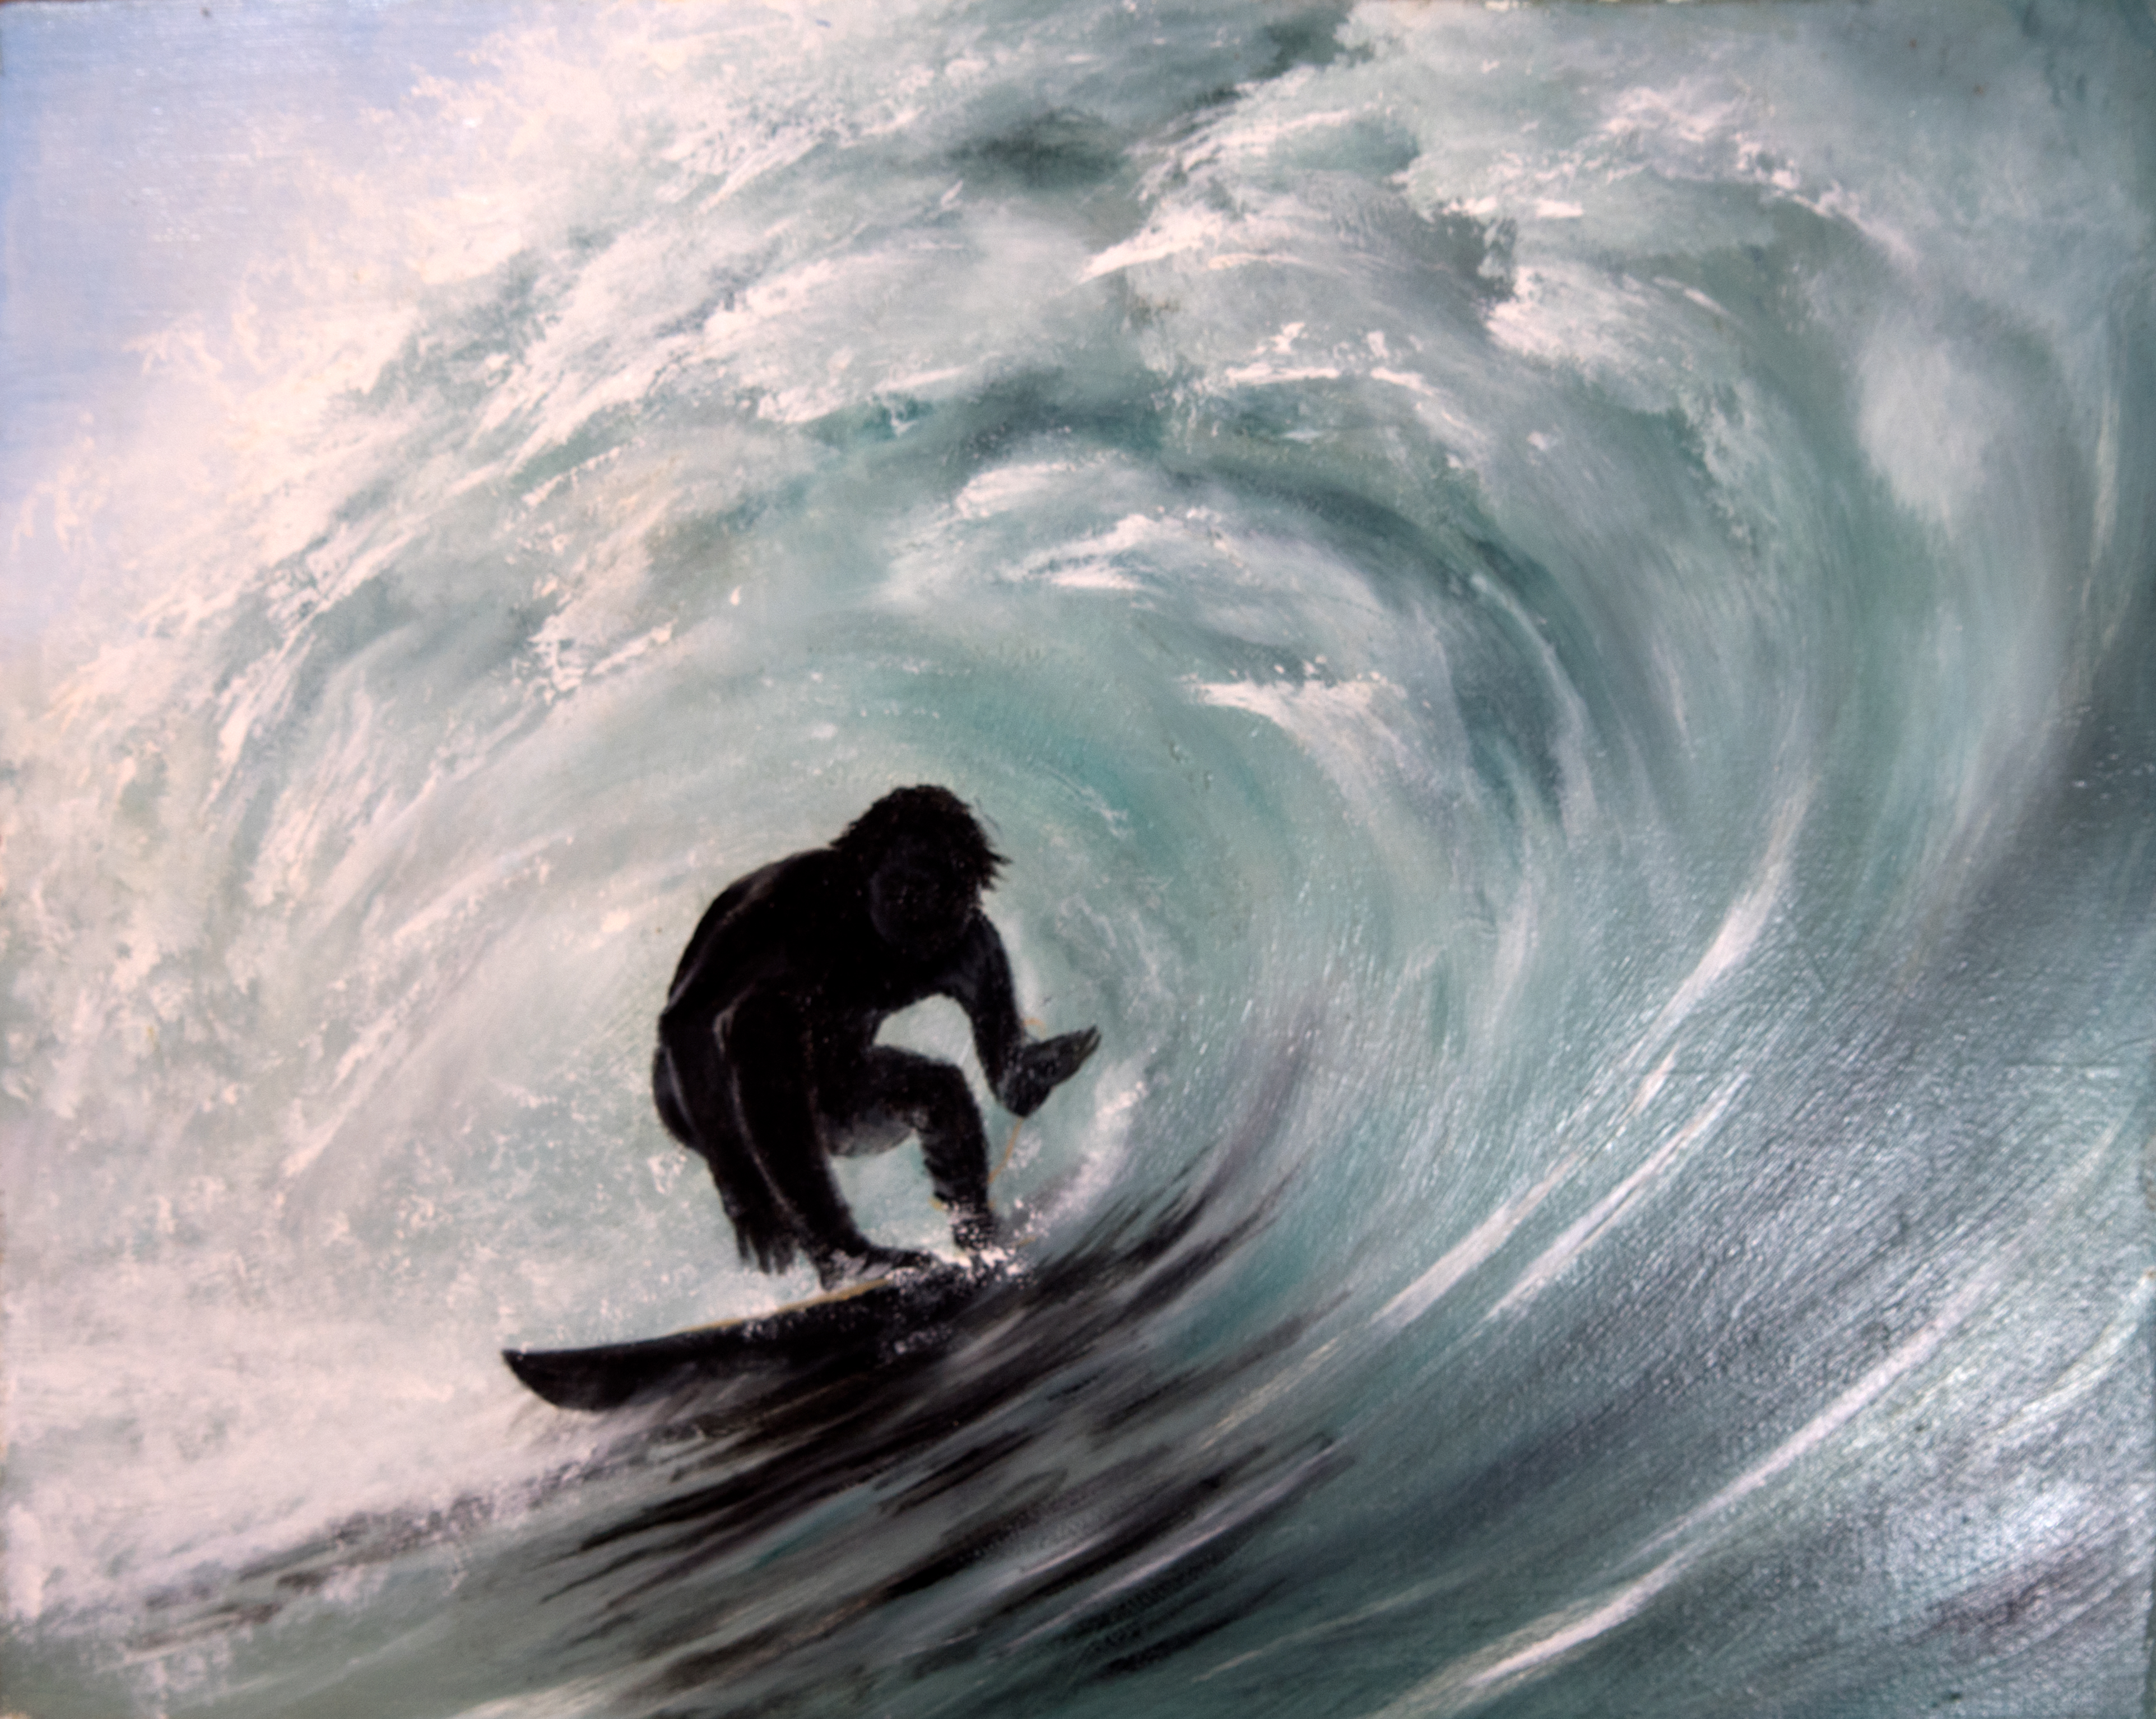 Barreled surf painting